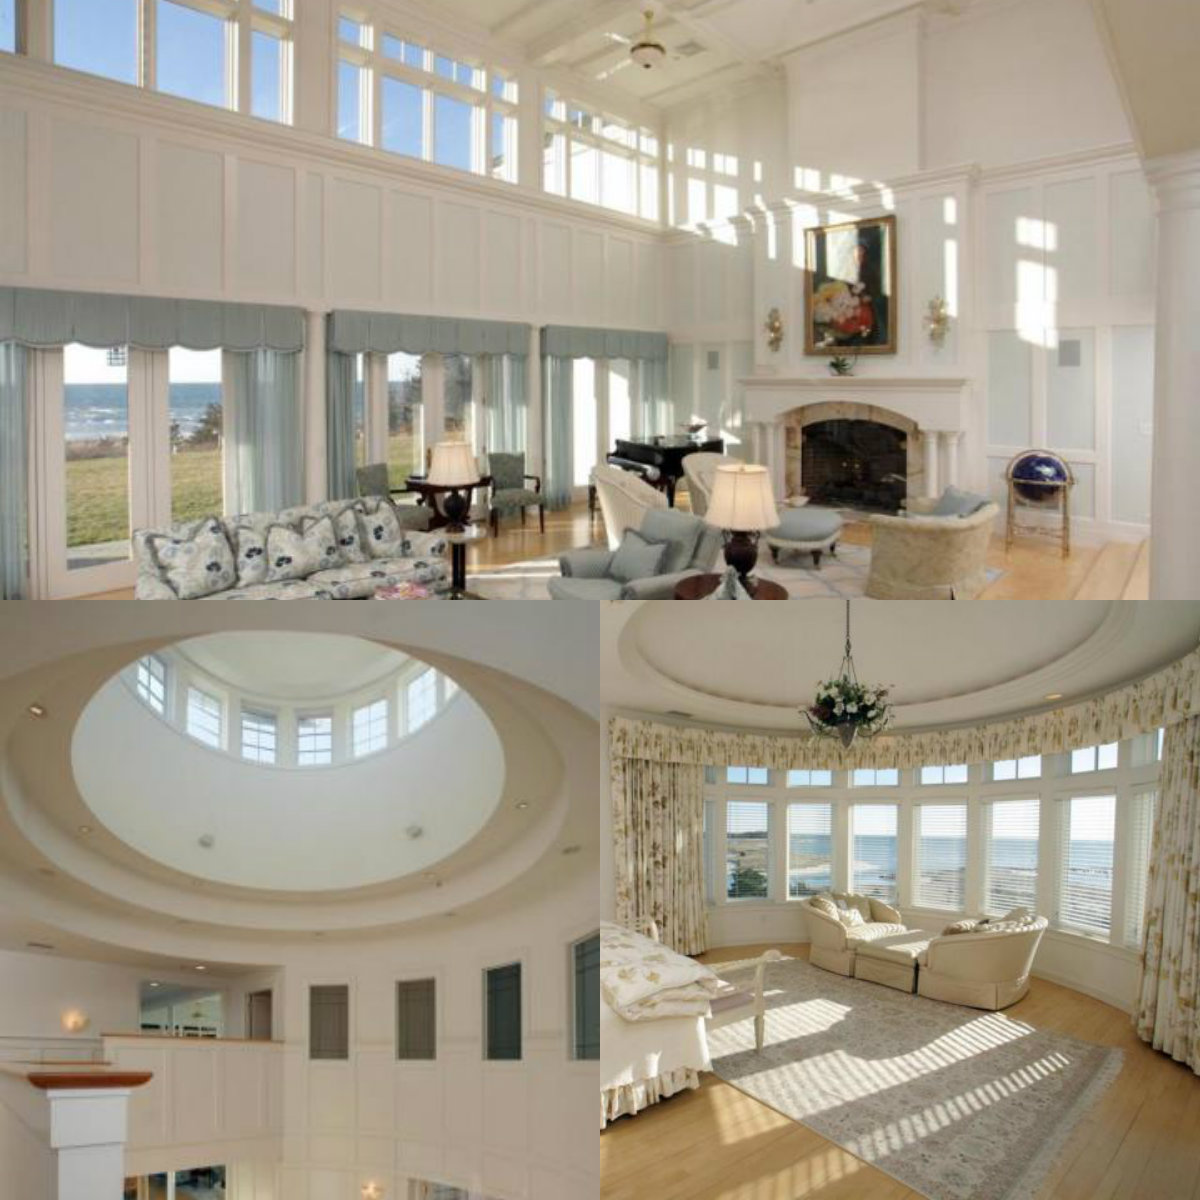 Images of rooms with windows in 251 Green Dunes Drive in West Hyannisport on Cape Cod MA